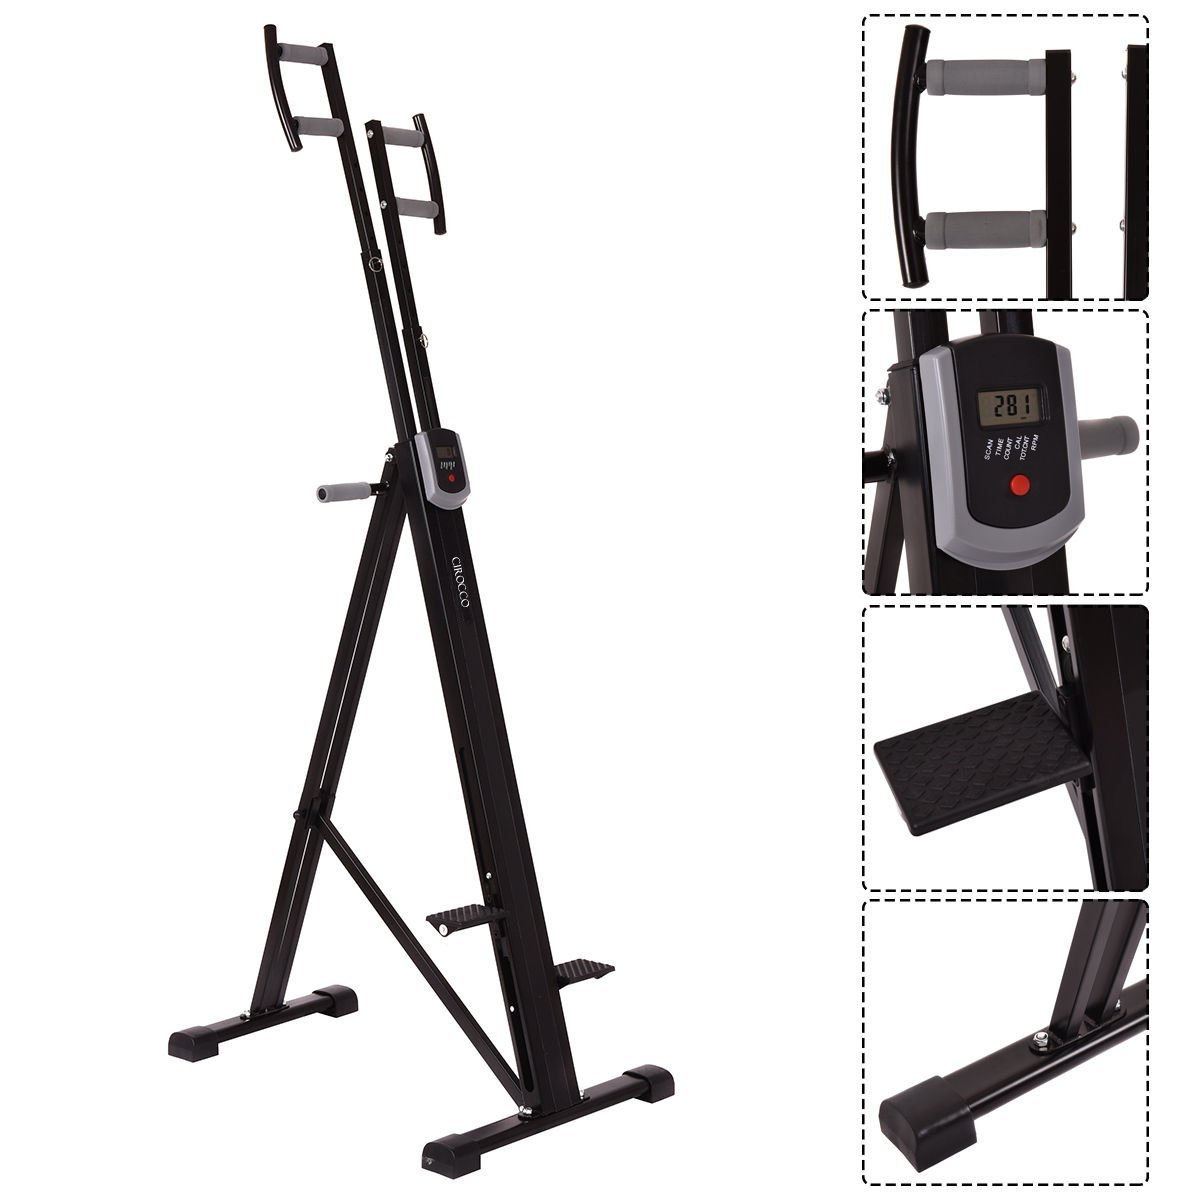 Cirocco Folding Stair Stepper Vertical Climber Exercise Cardio Machine w/ LCD Display | Strong Sturdy Total Full Body Aerobic Anaerobic Workout Fitness Equipment for Calorie Fat Burn Leg Bicep Triceps